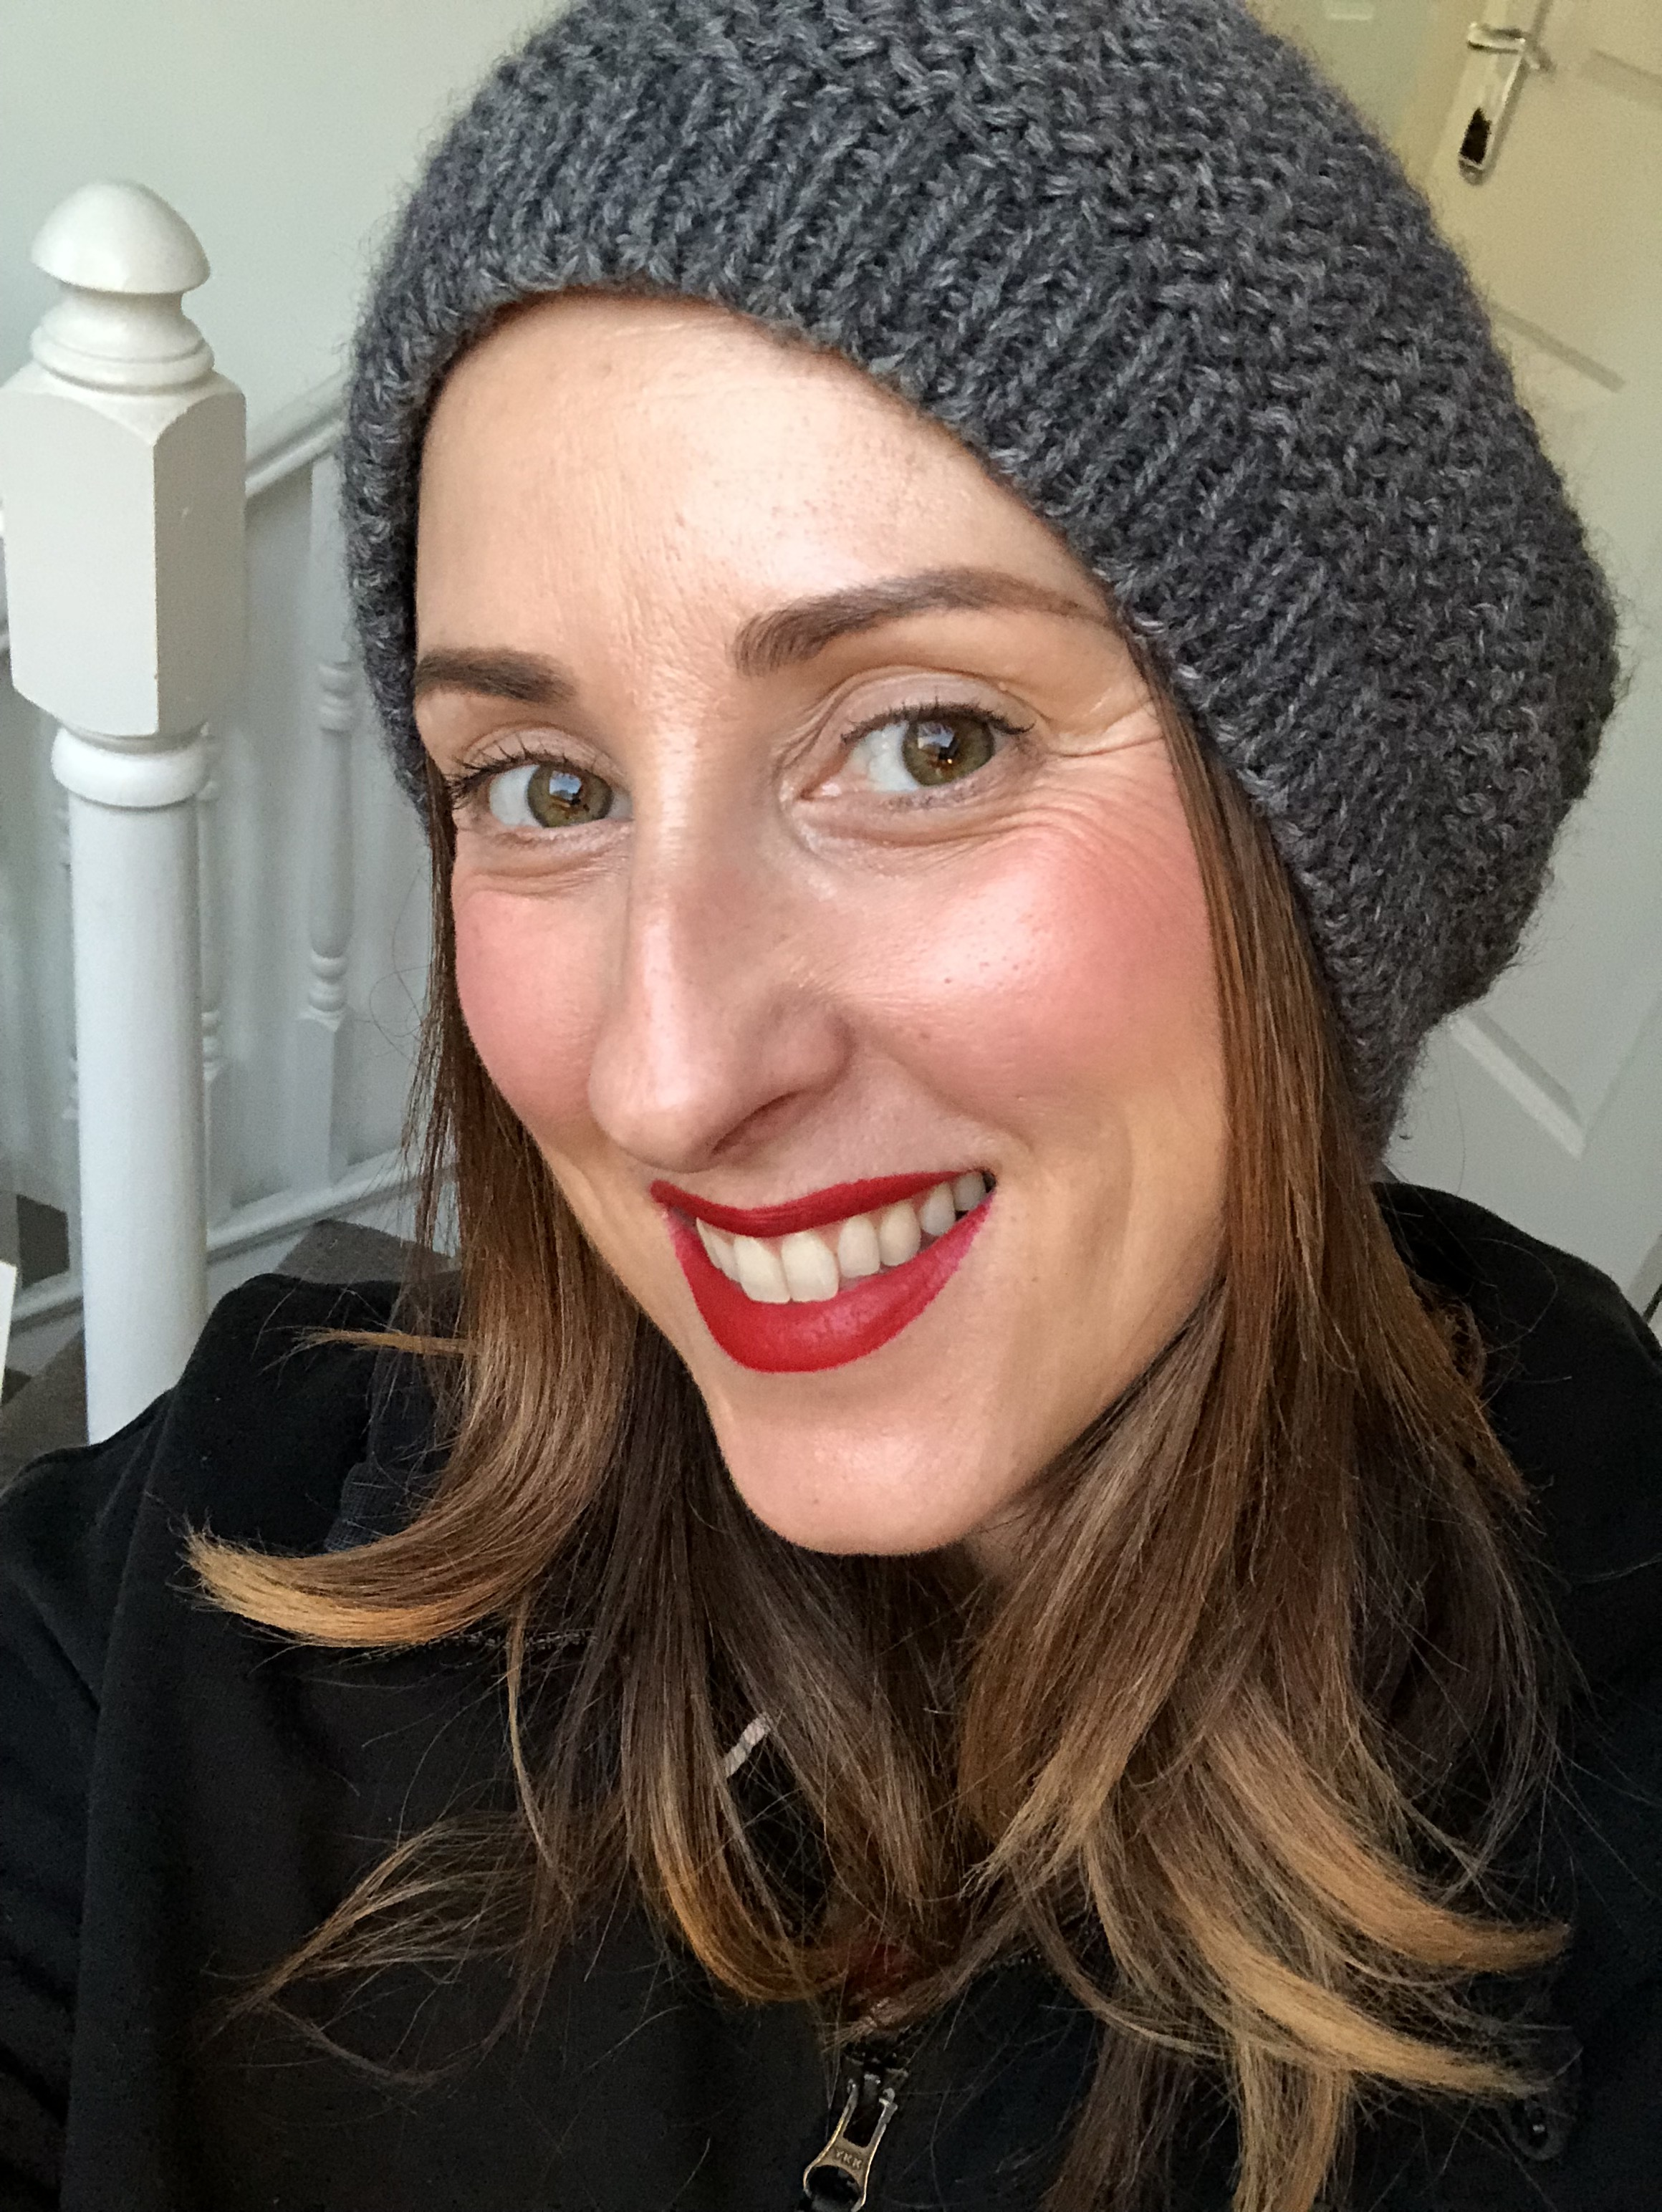 Even with no eye makeup and just blusher you can look easily pulled together with a red lip, even in a hoodie and wooly hat! lol! this is my Sunday look. This colour is Bobbi Brown Lip pencil in Red with Edwin from Lips and Boys from Tom Ford Beauty